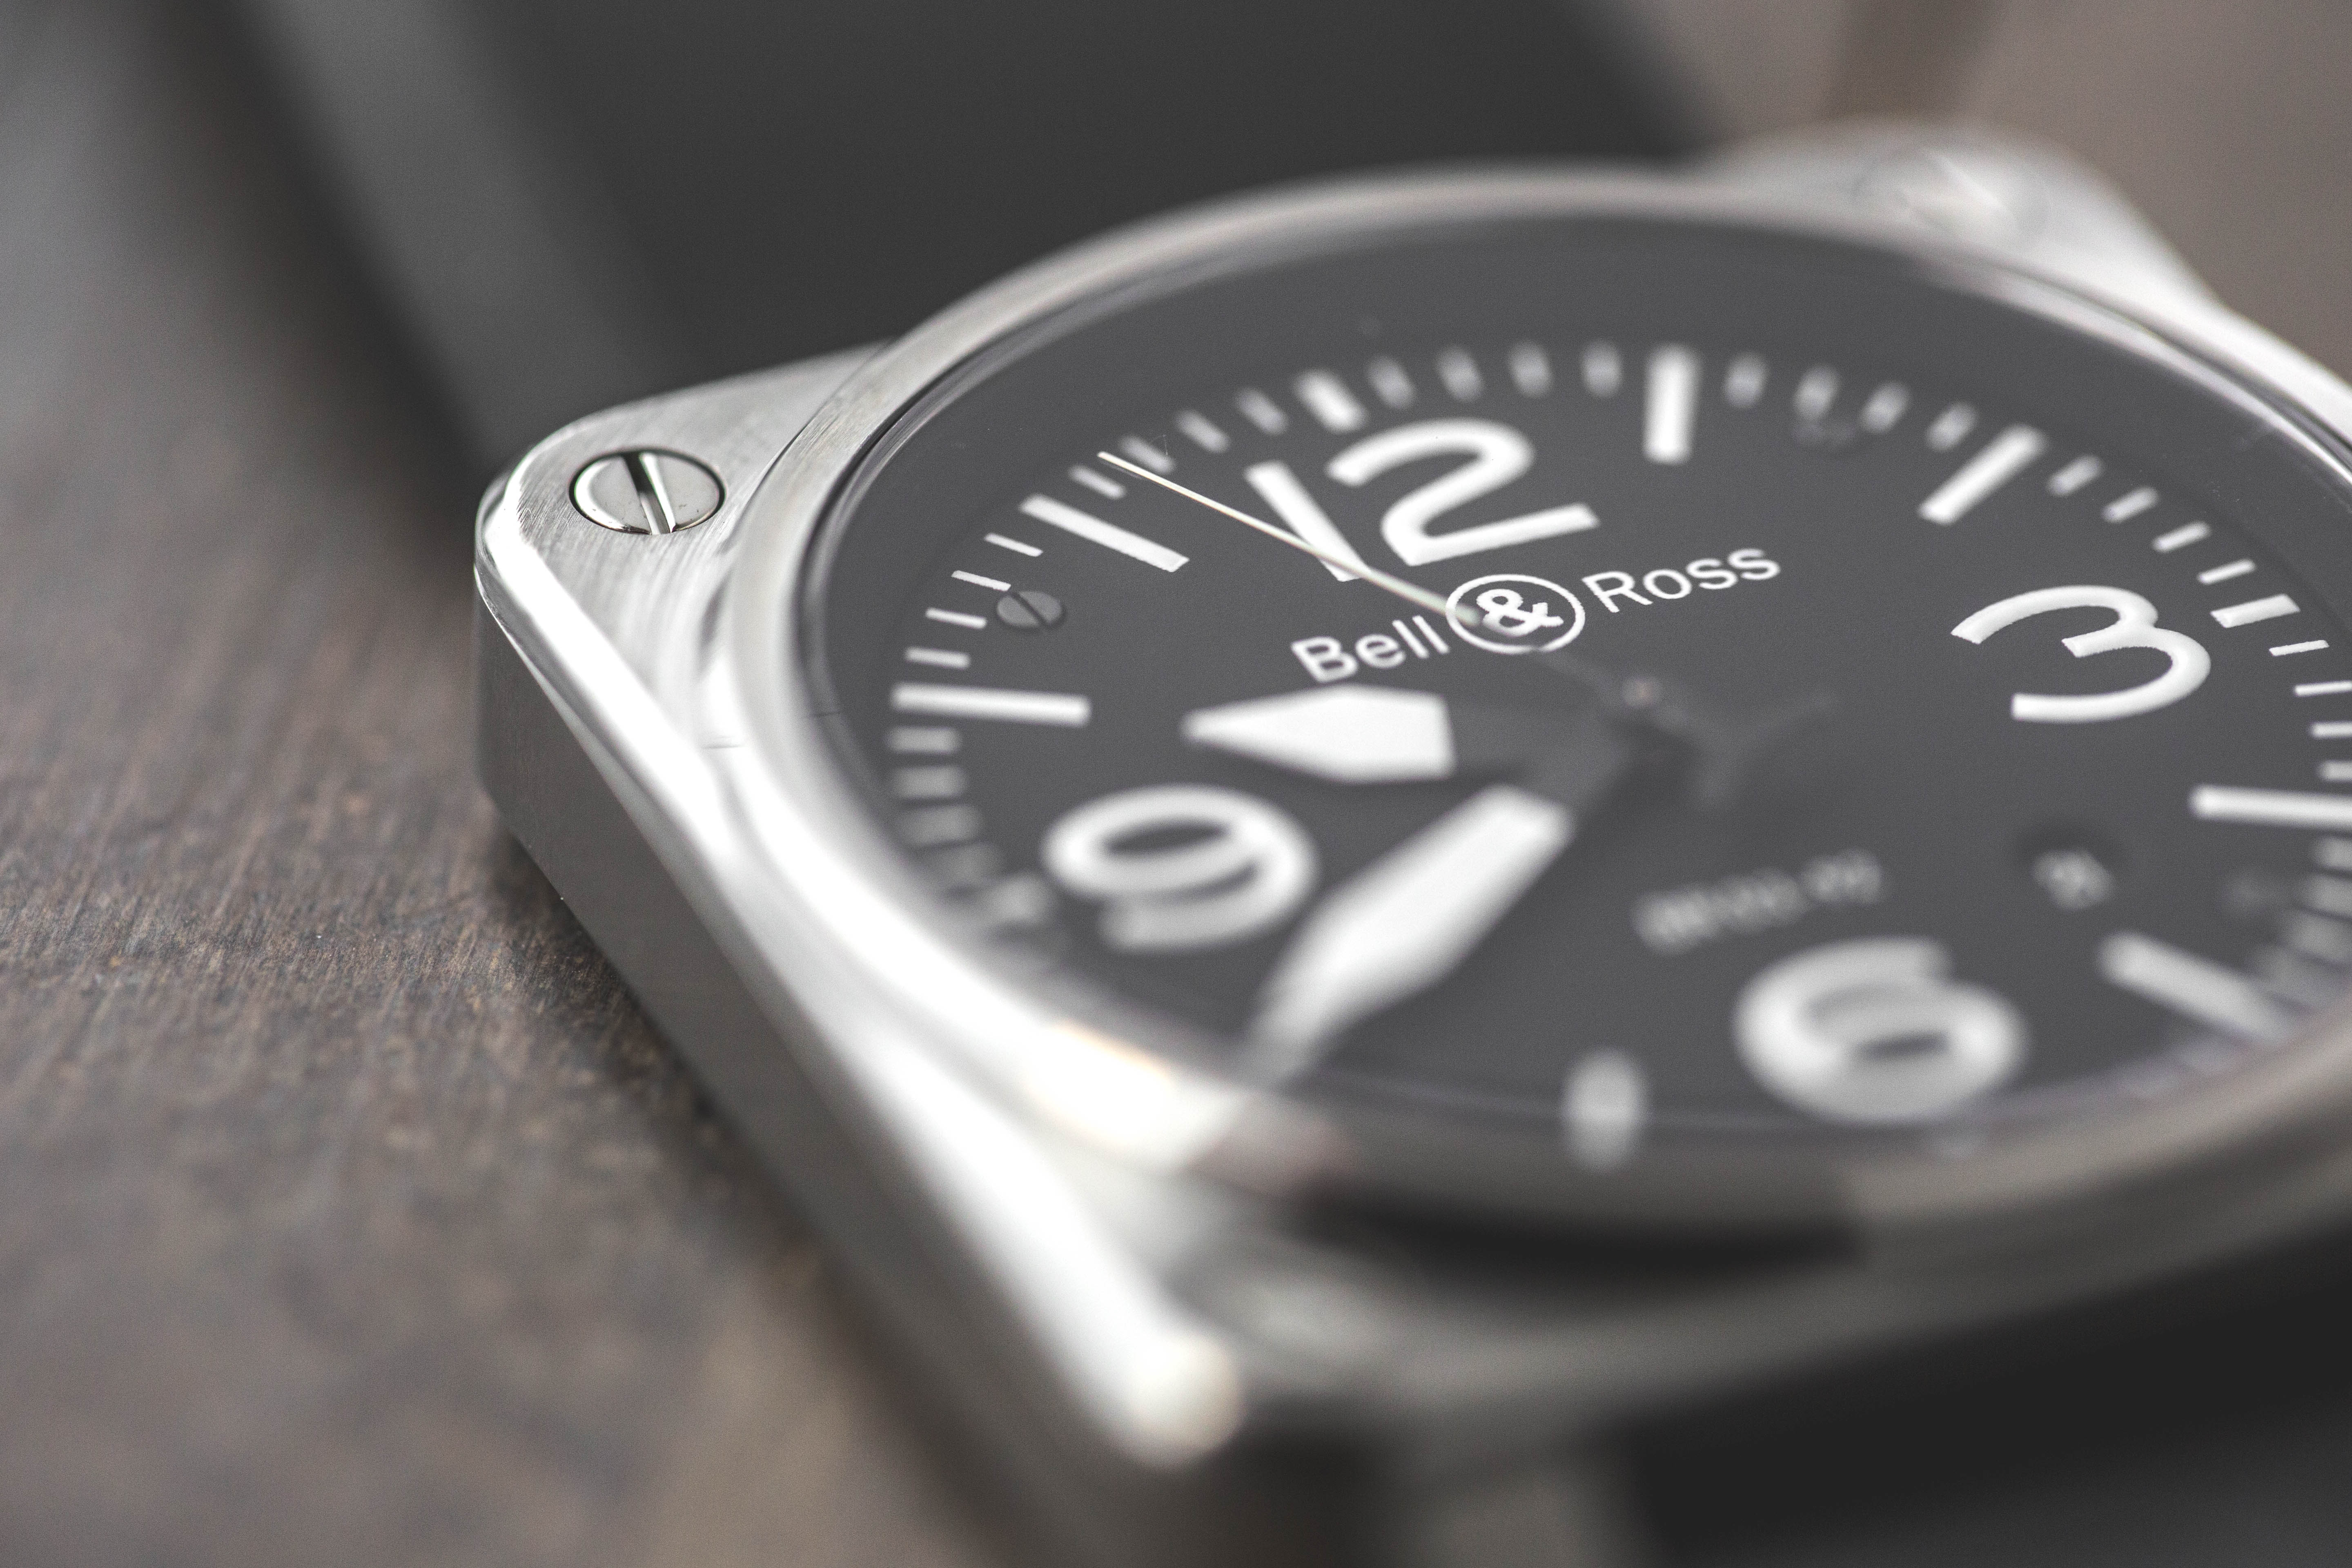 Watch Brand You Should Know: Bell & Ross Replica Watches